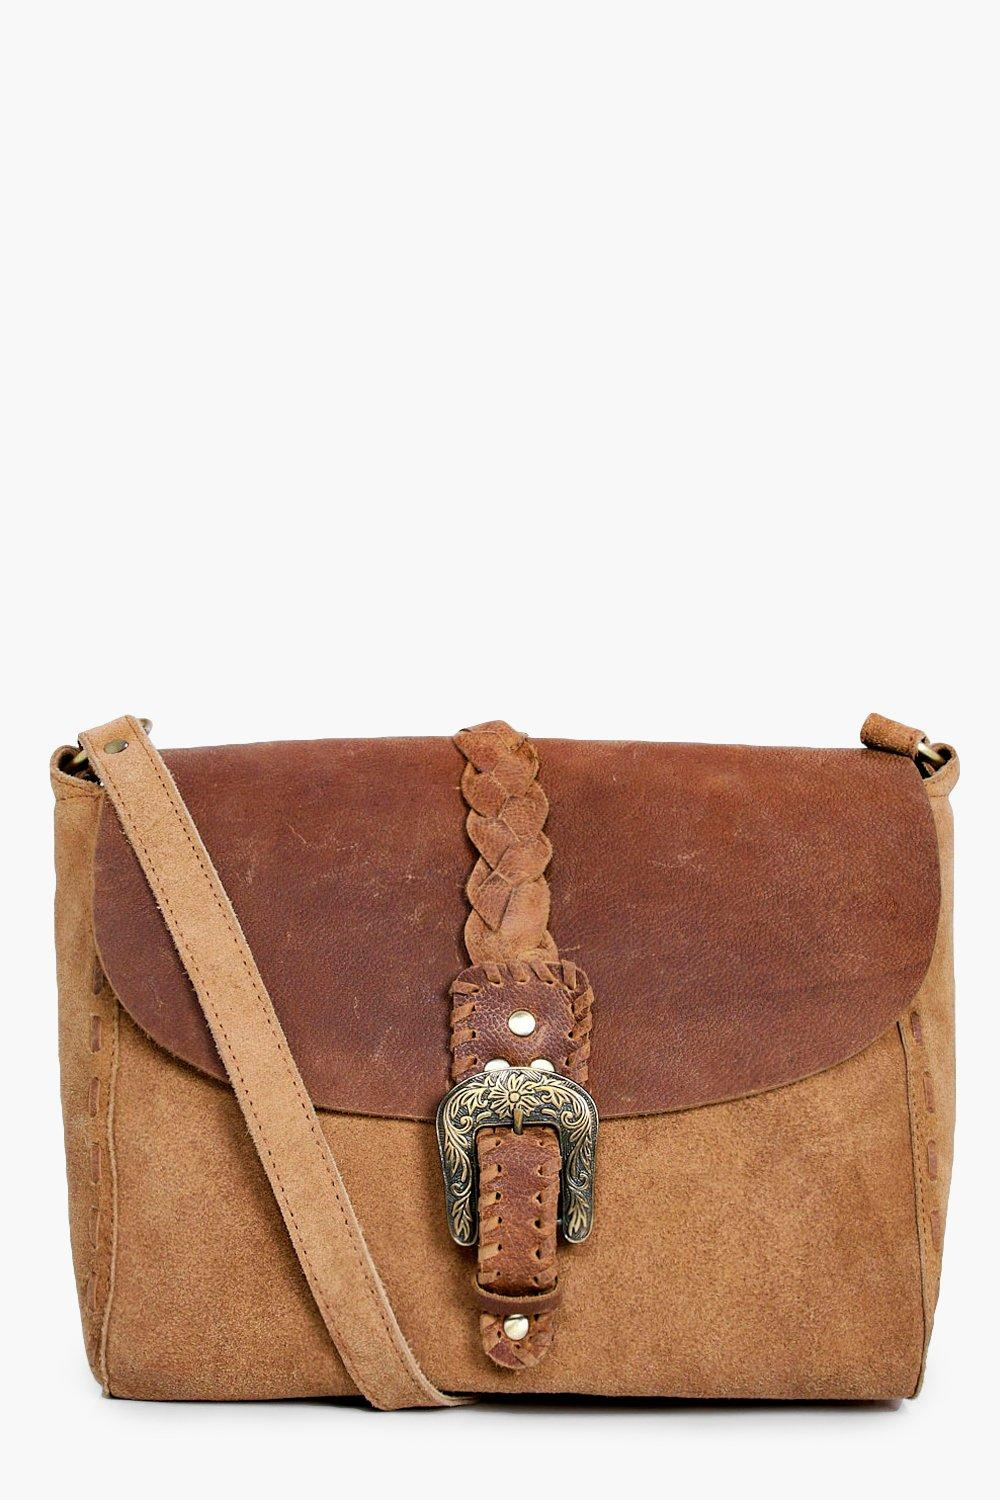 Boutique Leather & Suede Buckle Cross Body Bag - t